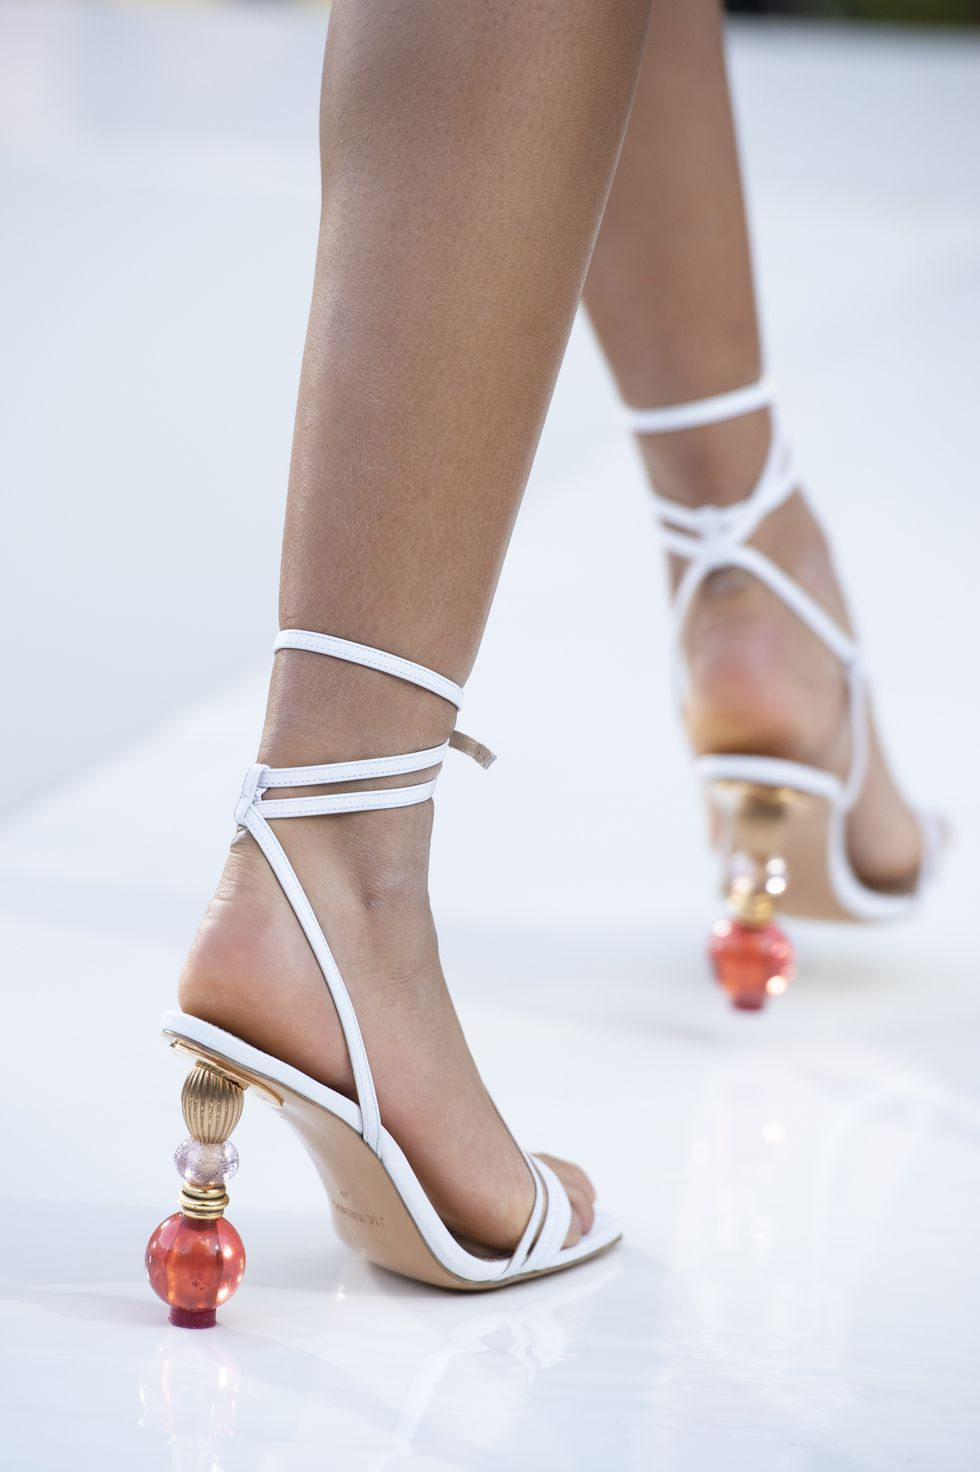 e4a69d25c8 Jacquemus Harpers Bazaar spring shoe trends 2019 Trend - Read the Spring  Summer 2019 Trends Fashion Week Coverage on Houseofcomil.com